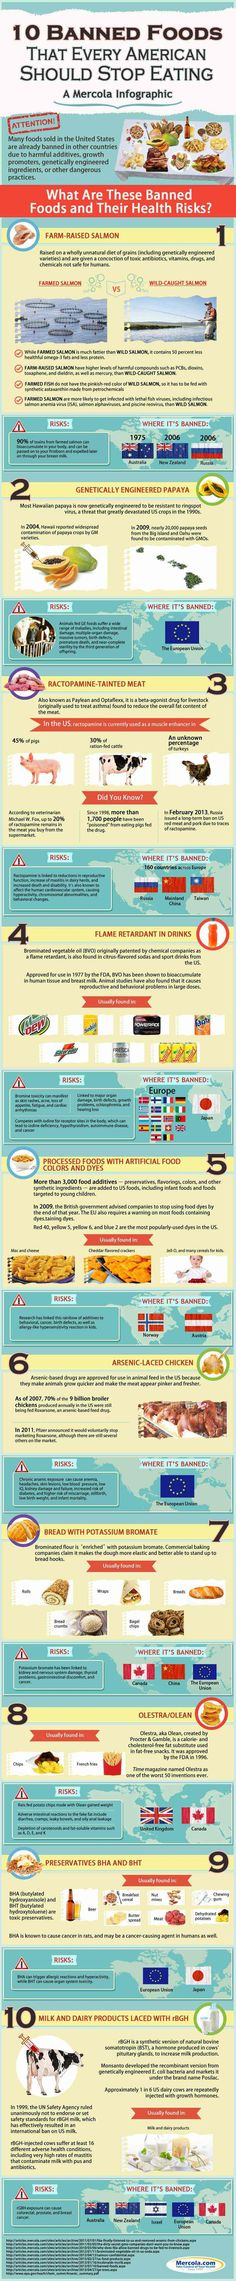 Health warning: 10 banned foods that everyone should stop eating. http://DrHardick.com